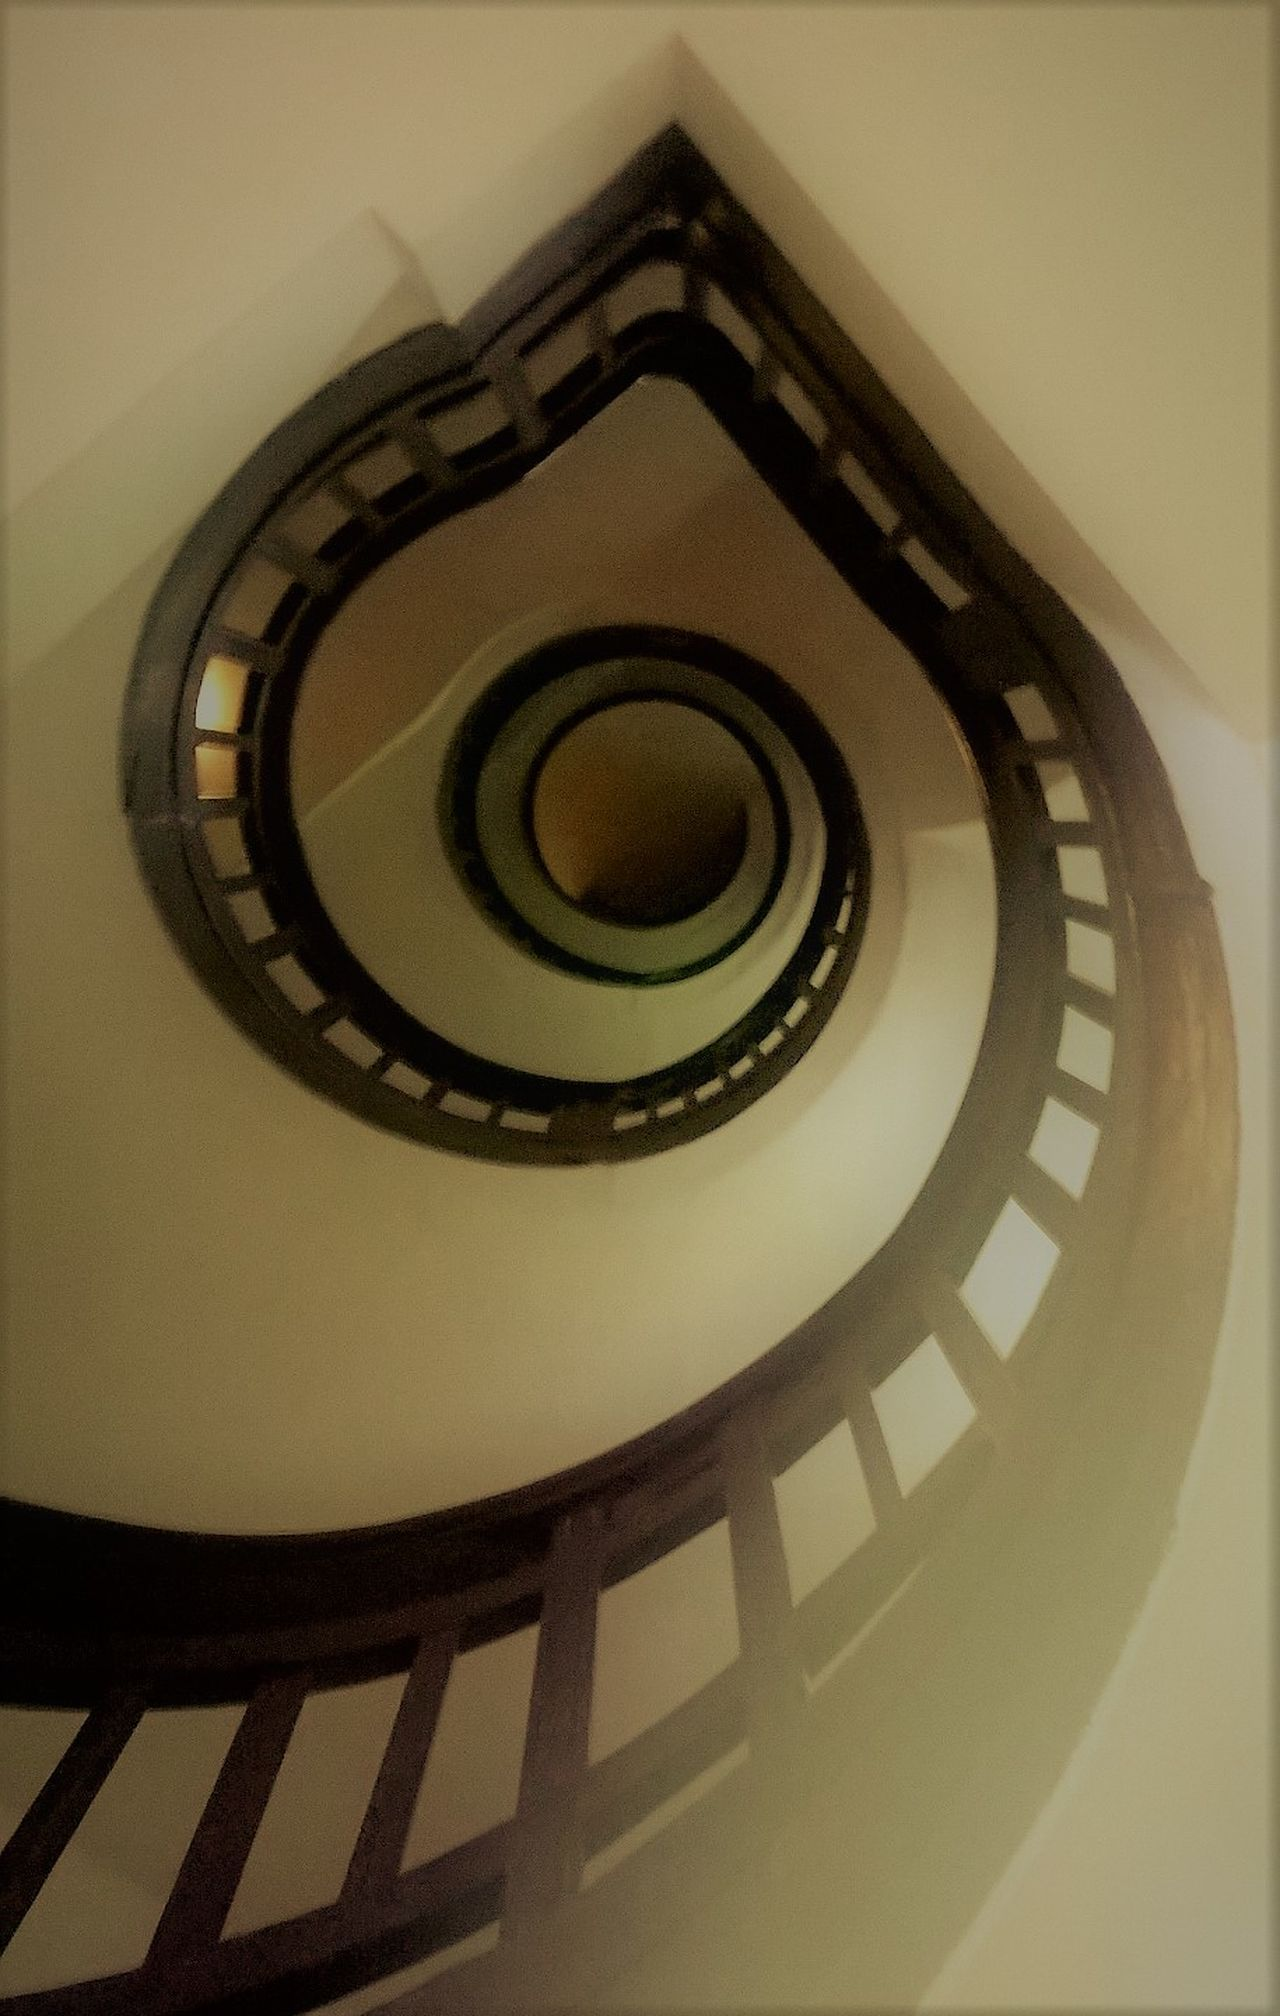 Architecture Built Structure Circle Design Hand Rail Indoors  Low Angle View No People Railing Spiral Spiral Staircase Spiral Stairs Staircase Stairs Steps Steps And Staircases